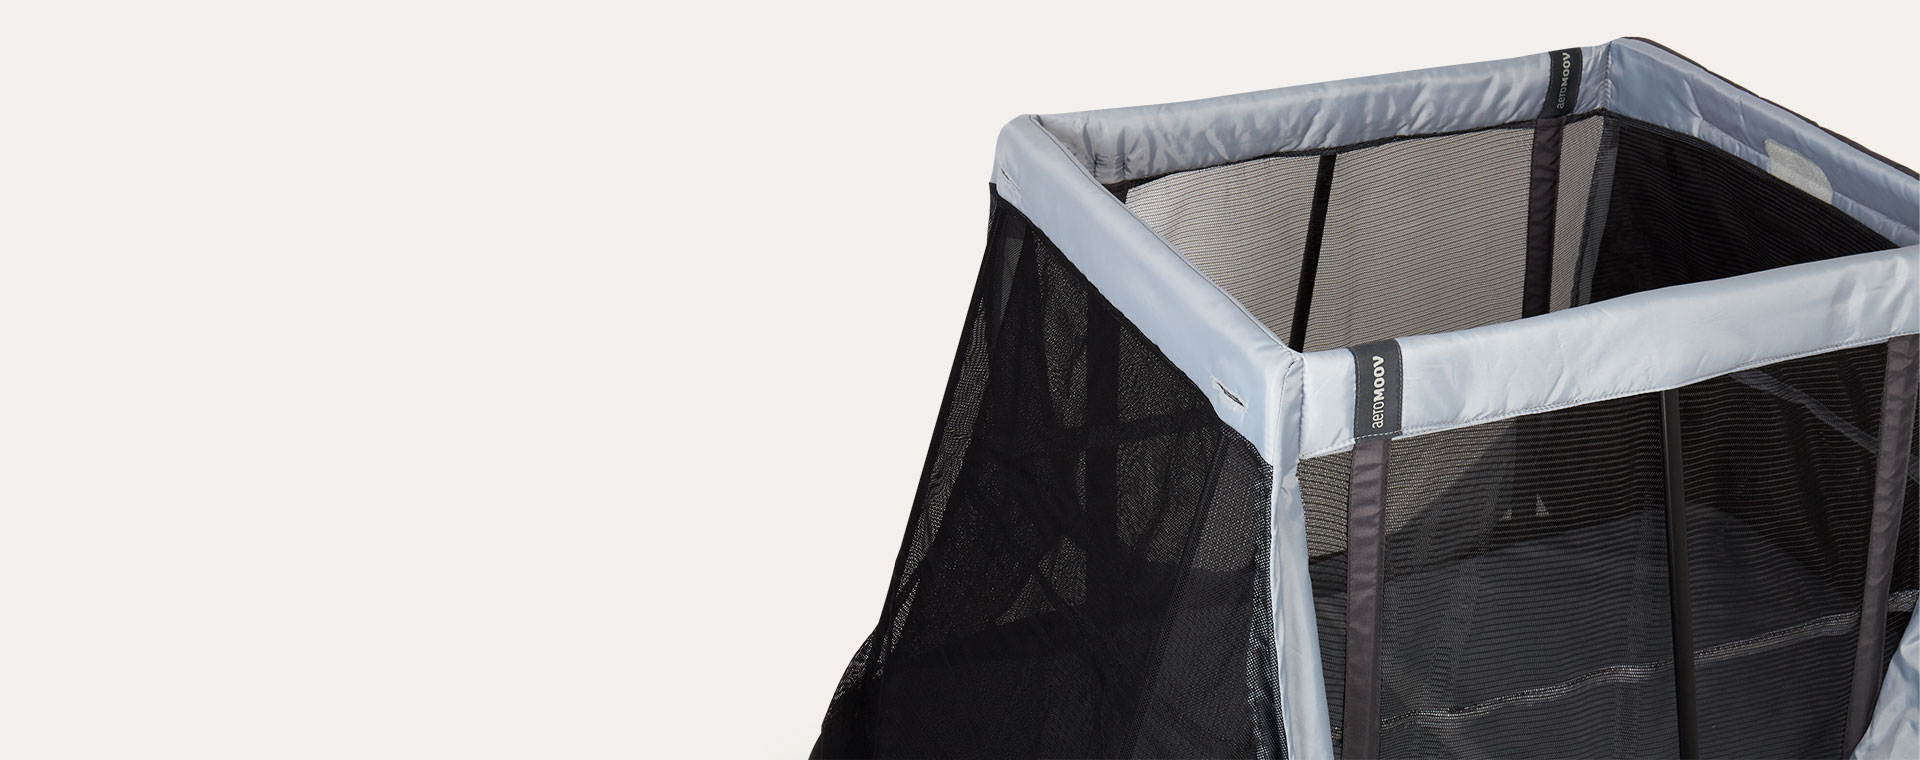 Grey Rock AeroMoov Instant Travel Cot